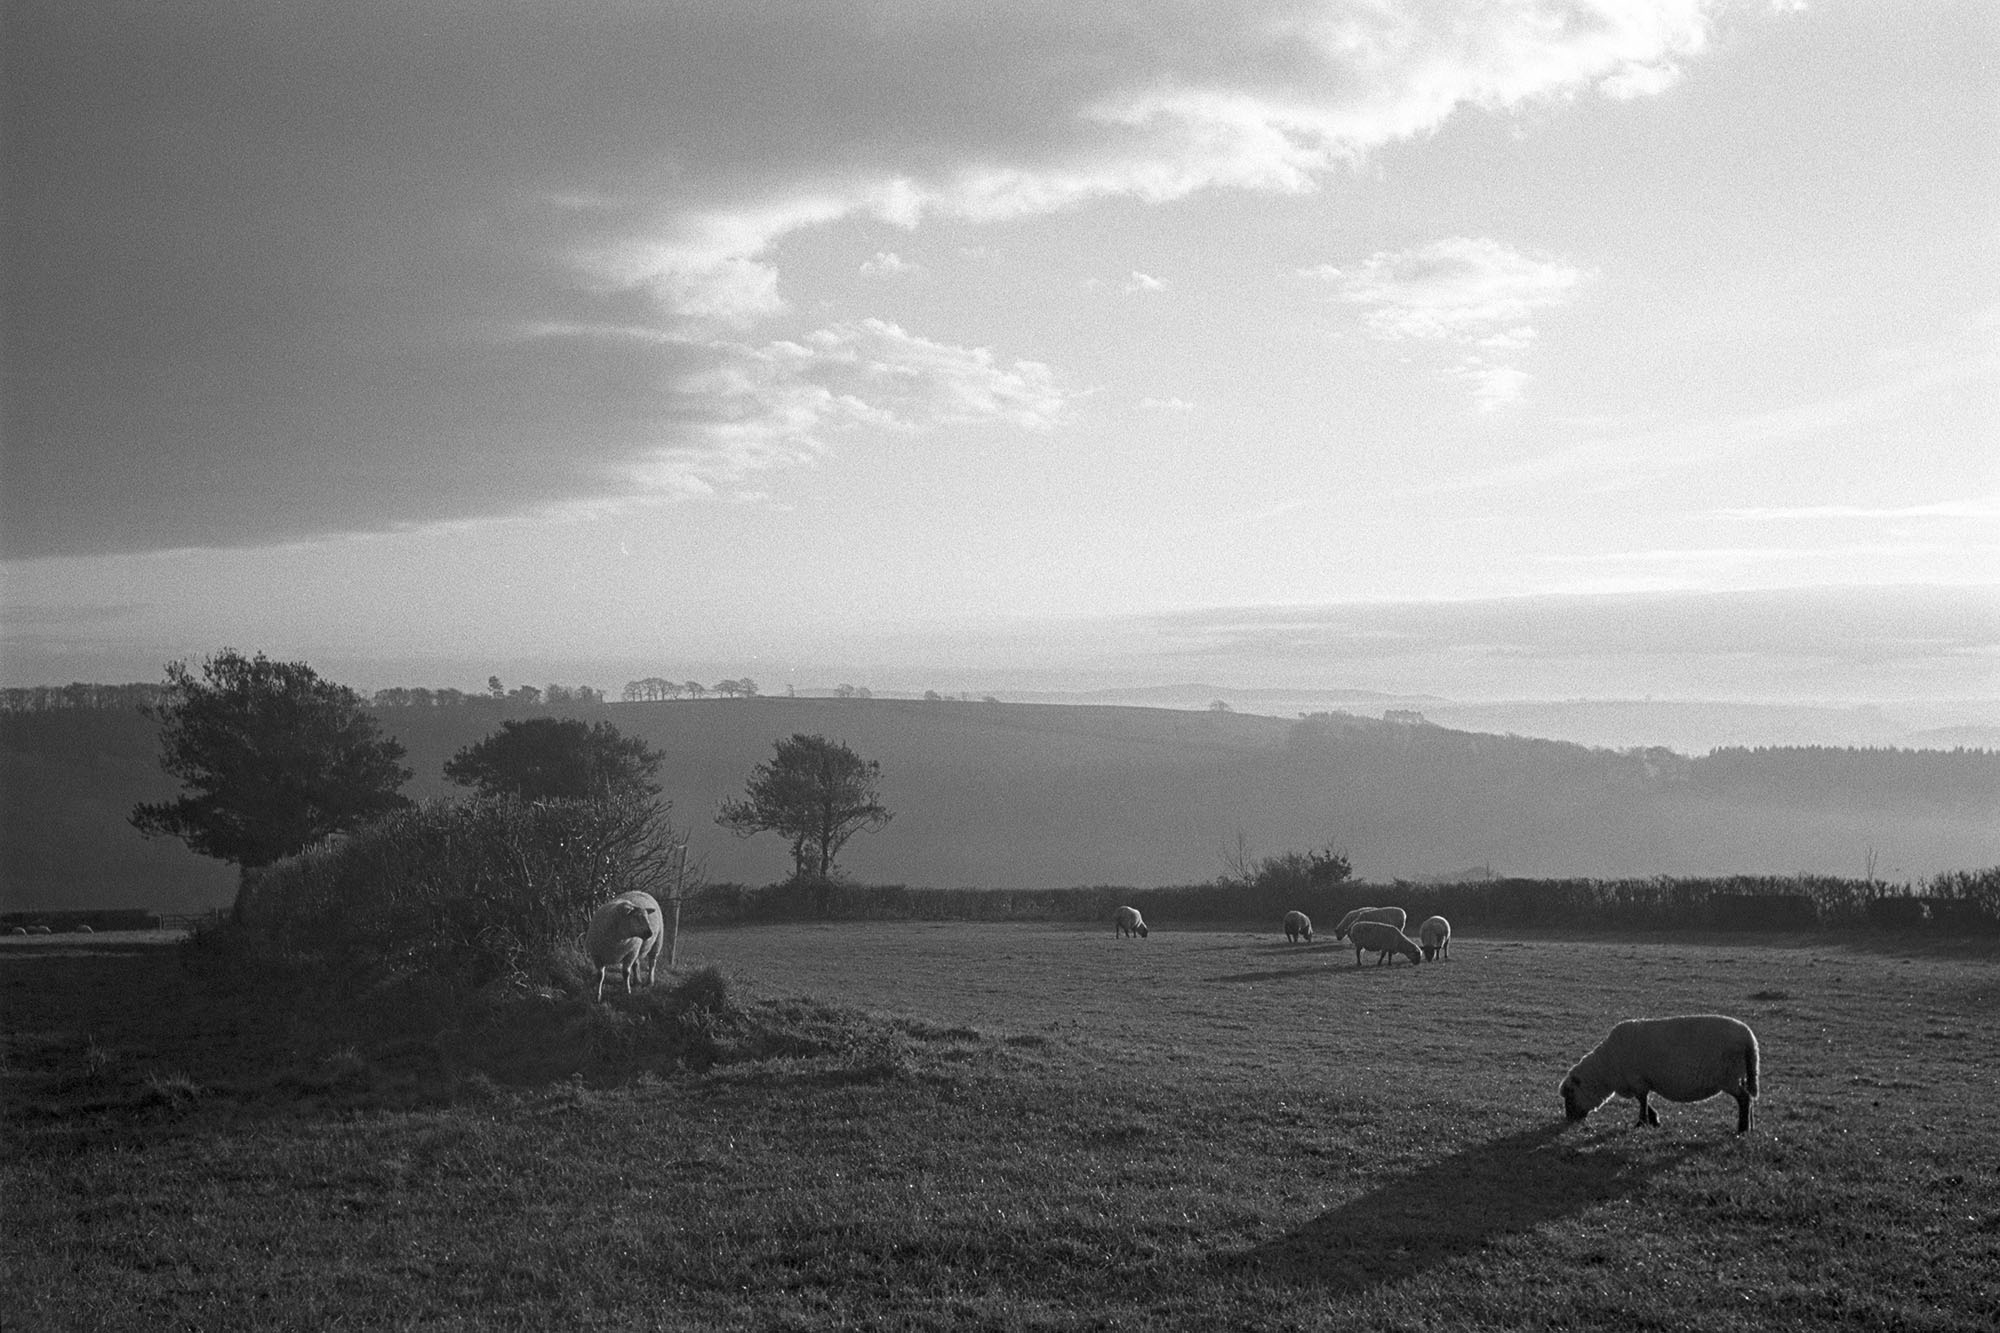 Morning landscape with sheep and cloud obscuring sun. <br /> [Sheep grazing in a field at Lakehead, Chulmleigh, in the morning. Clouds are in the sky above them, obscuring the sun. The background of fields and trees is hazy.]